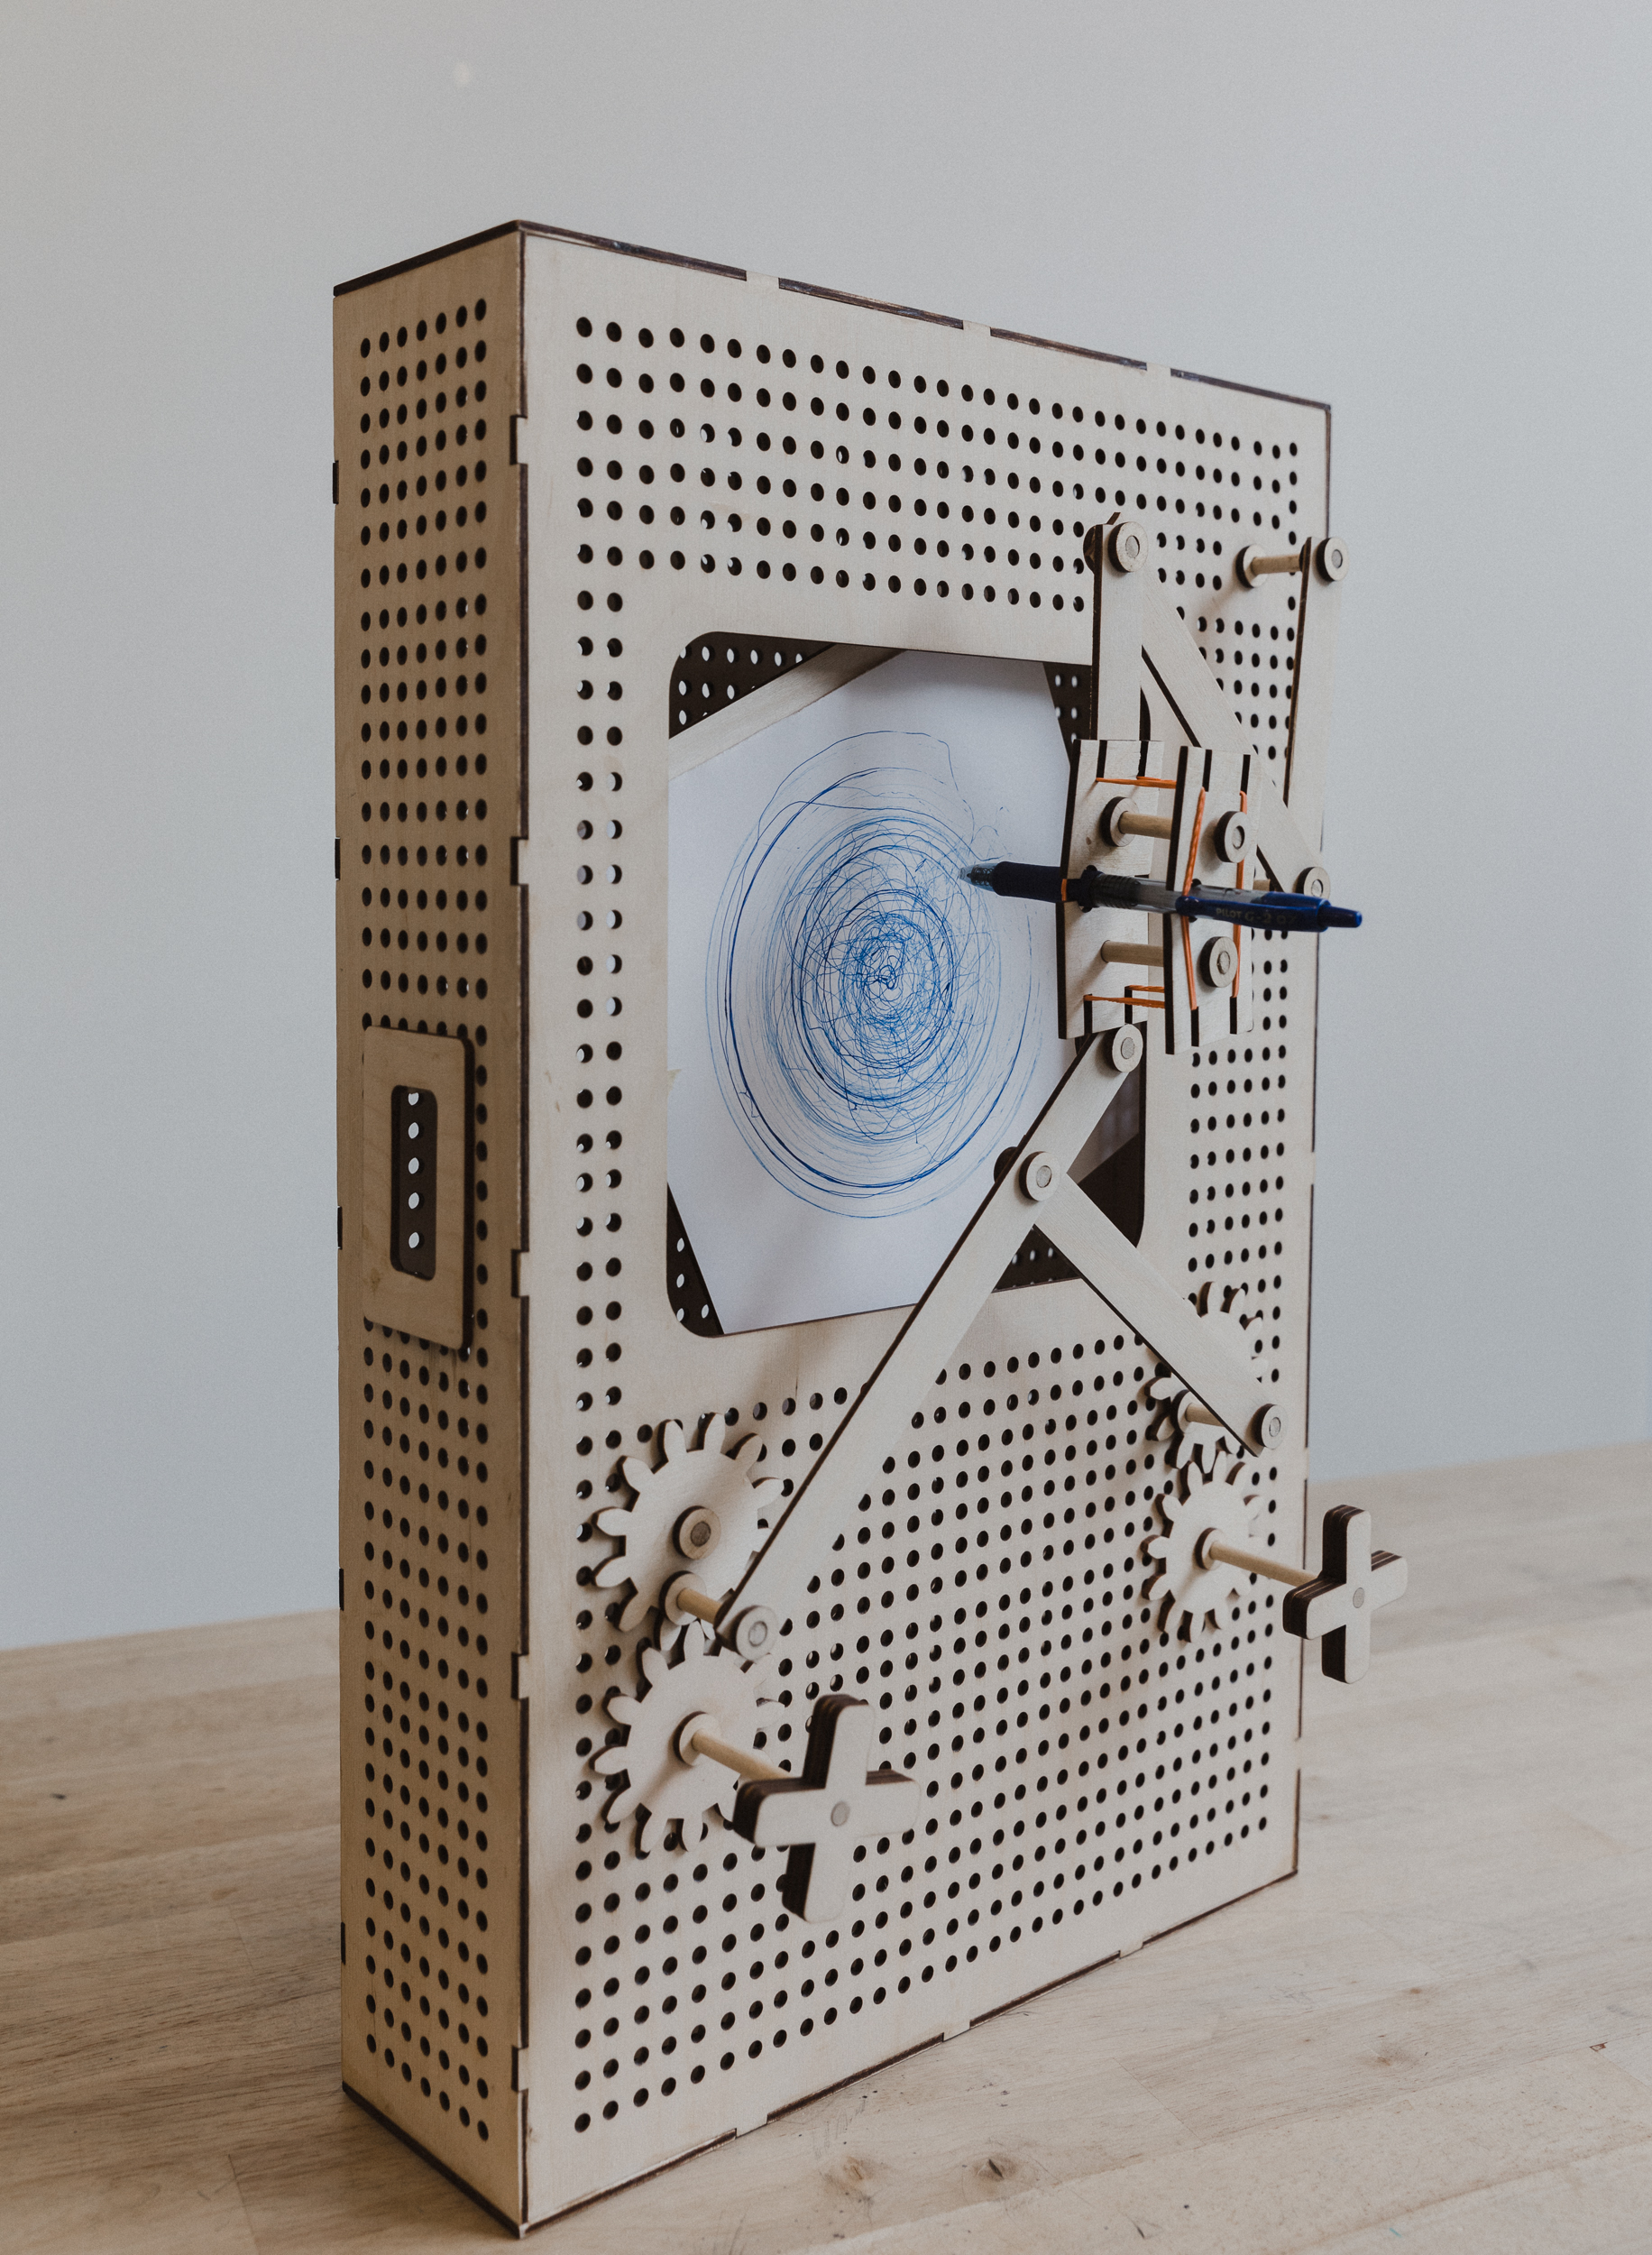 DRAWING MACHINE: THE GAME SKETCH